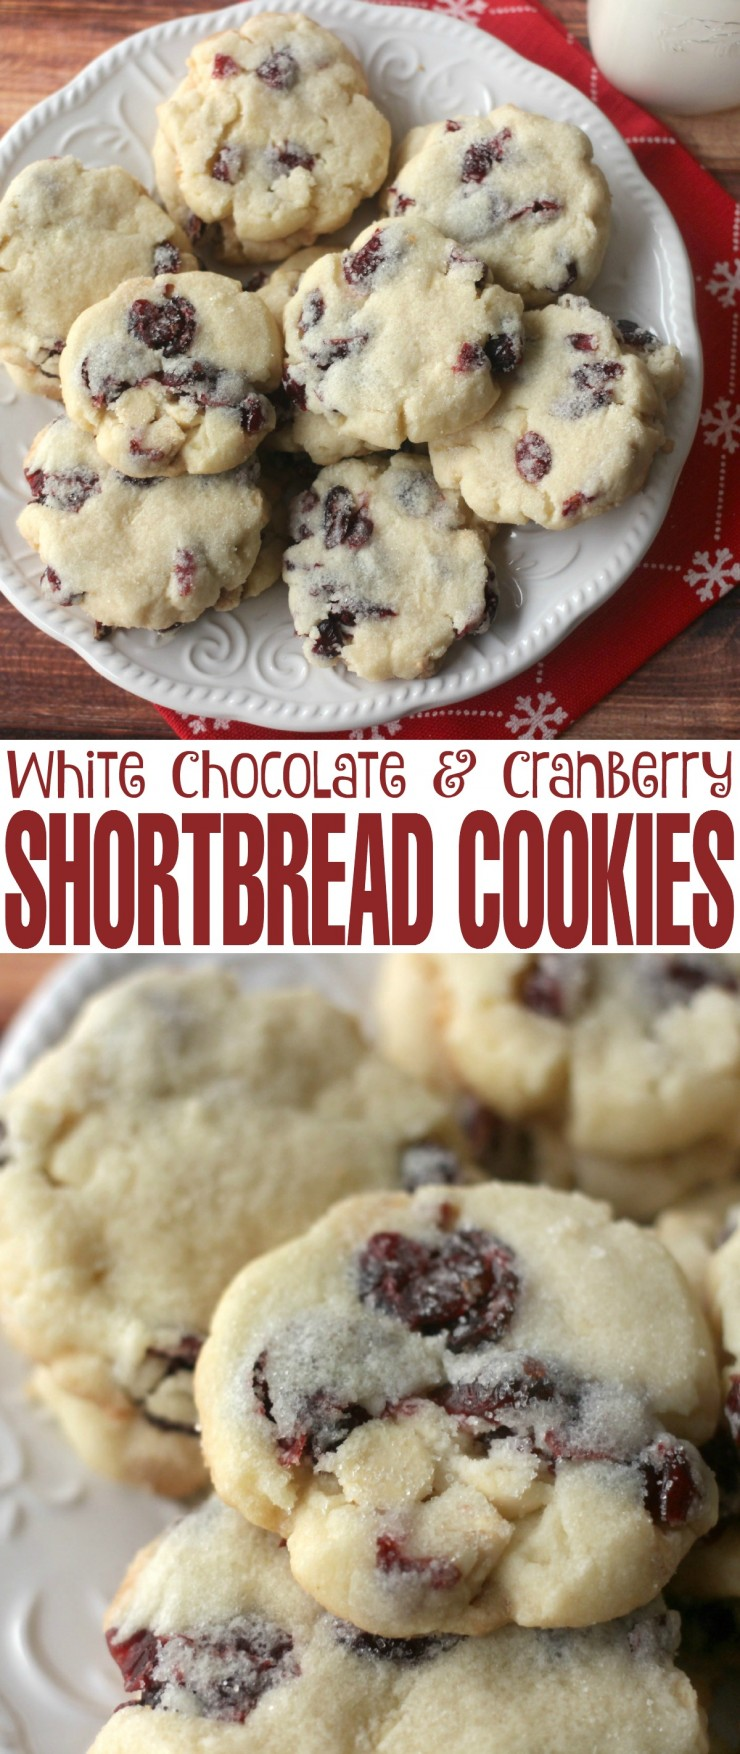 White Chocolate & Cranberry Shortbread cookies- are a delicious twist on a classic shortbread cookie recipe! Great Christmas Cookies!